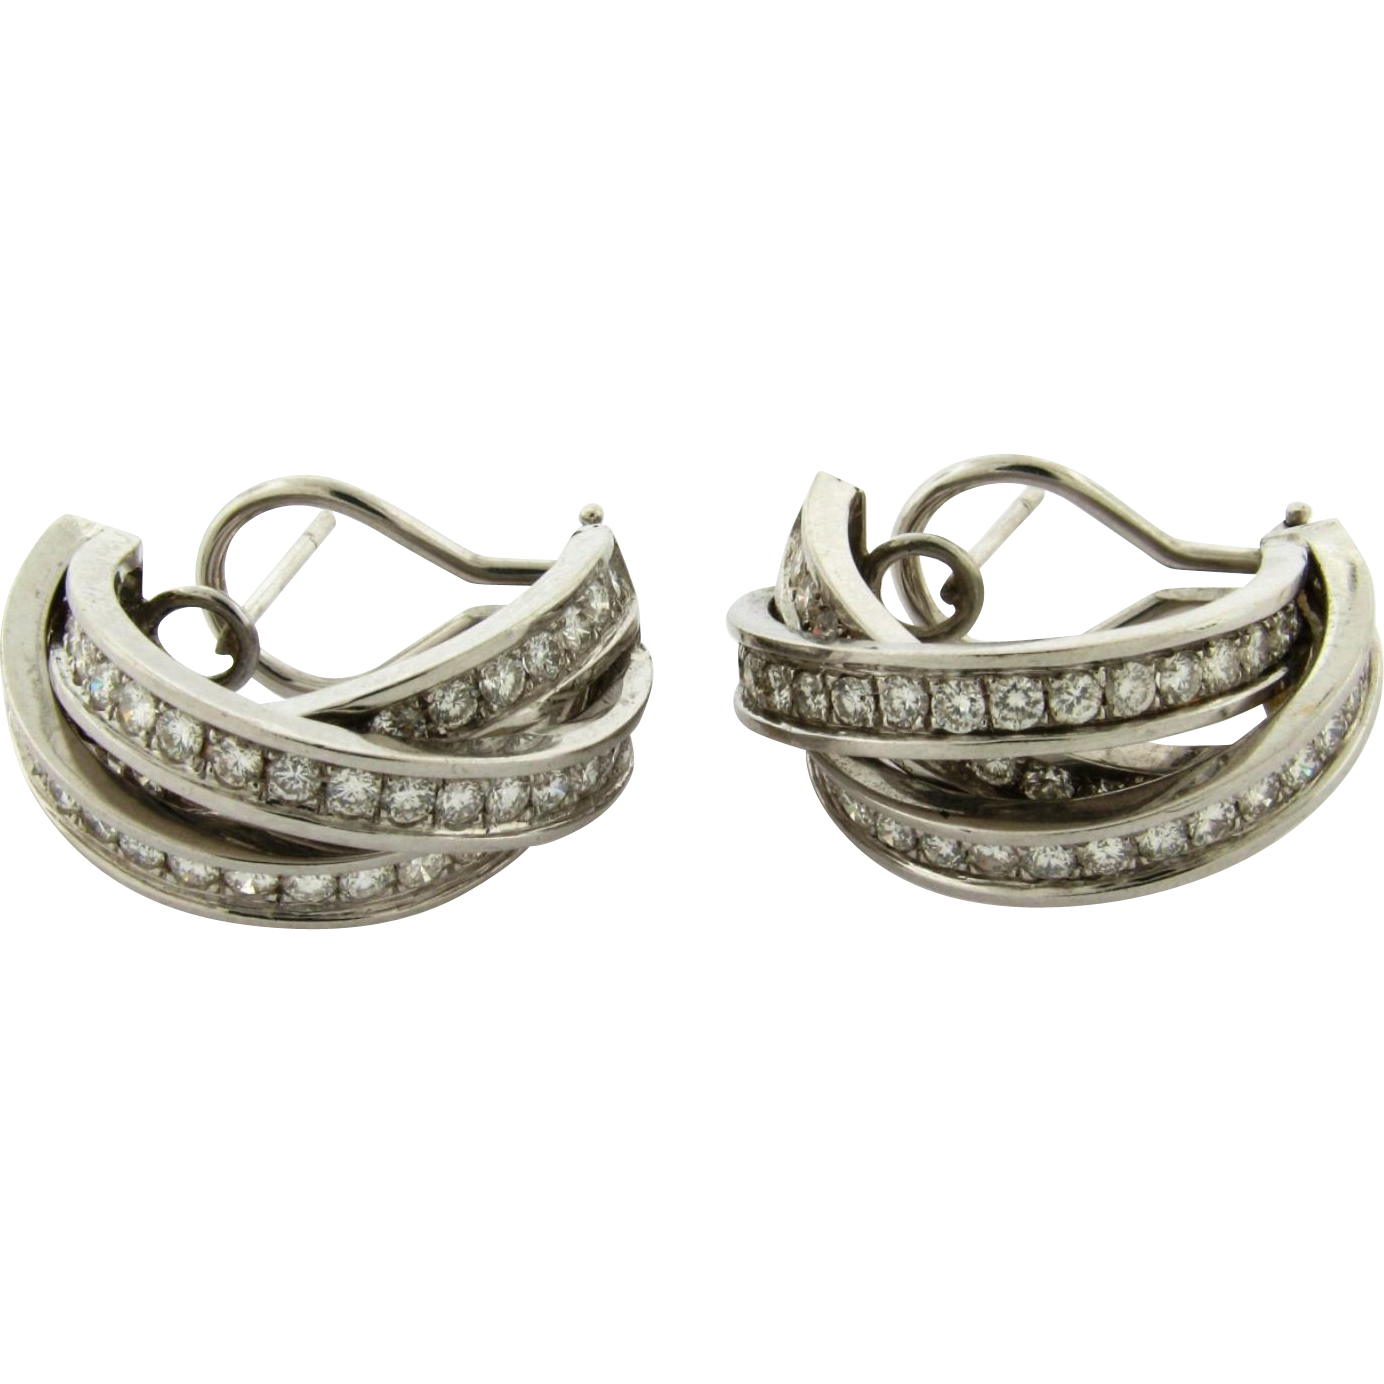 24 carat gold earrings vintage 18k white gold 3 24 carat earrings quot half 7633